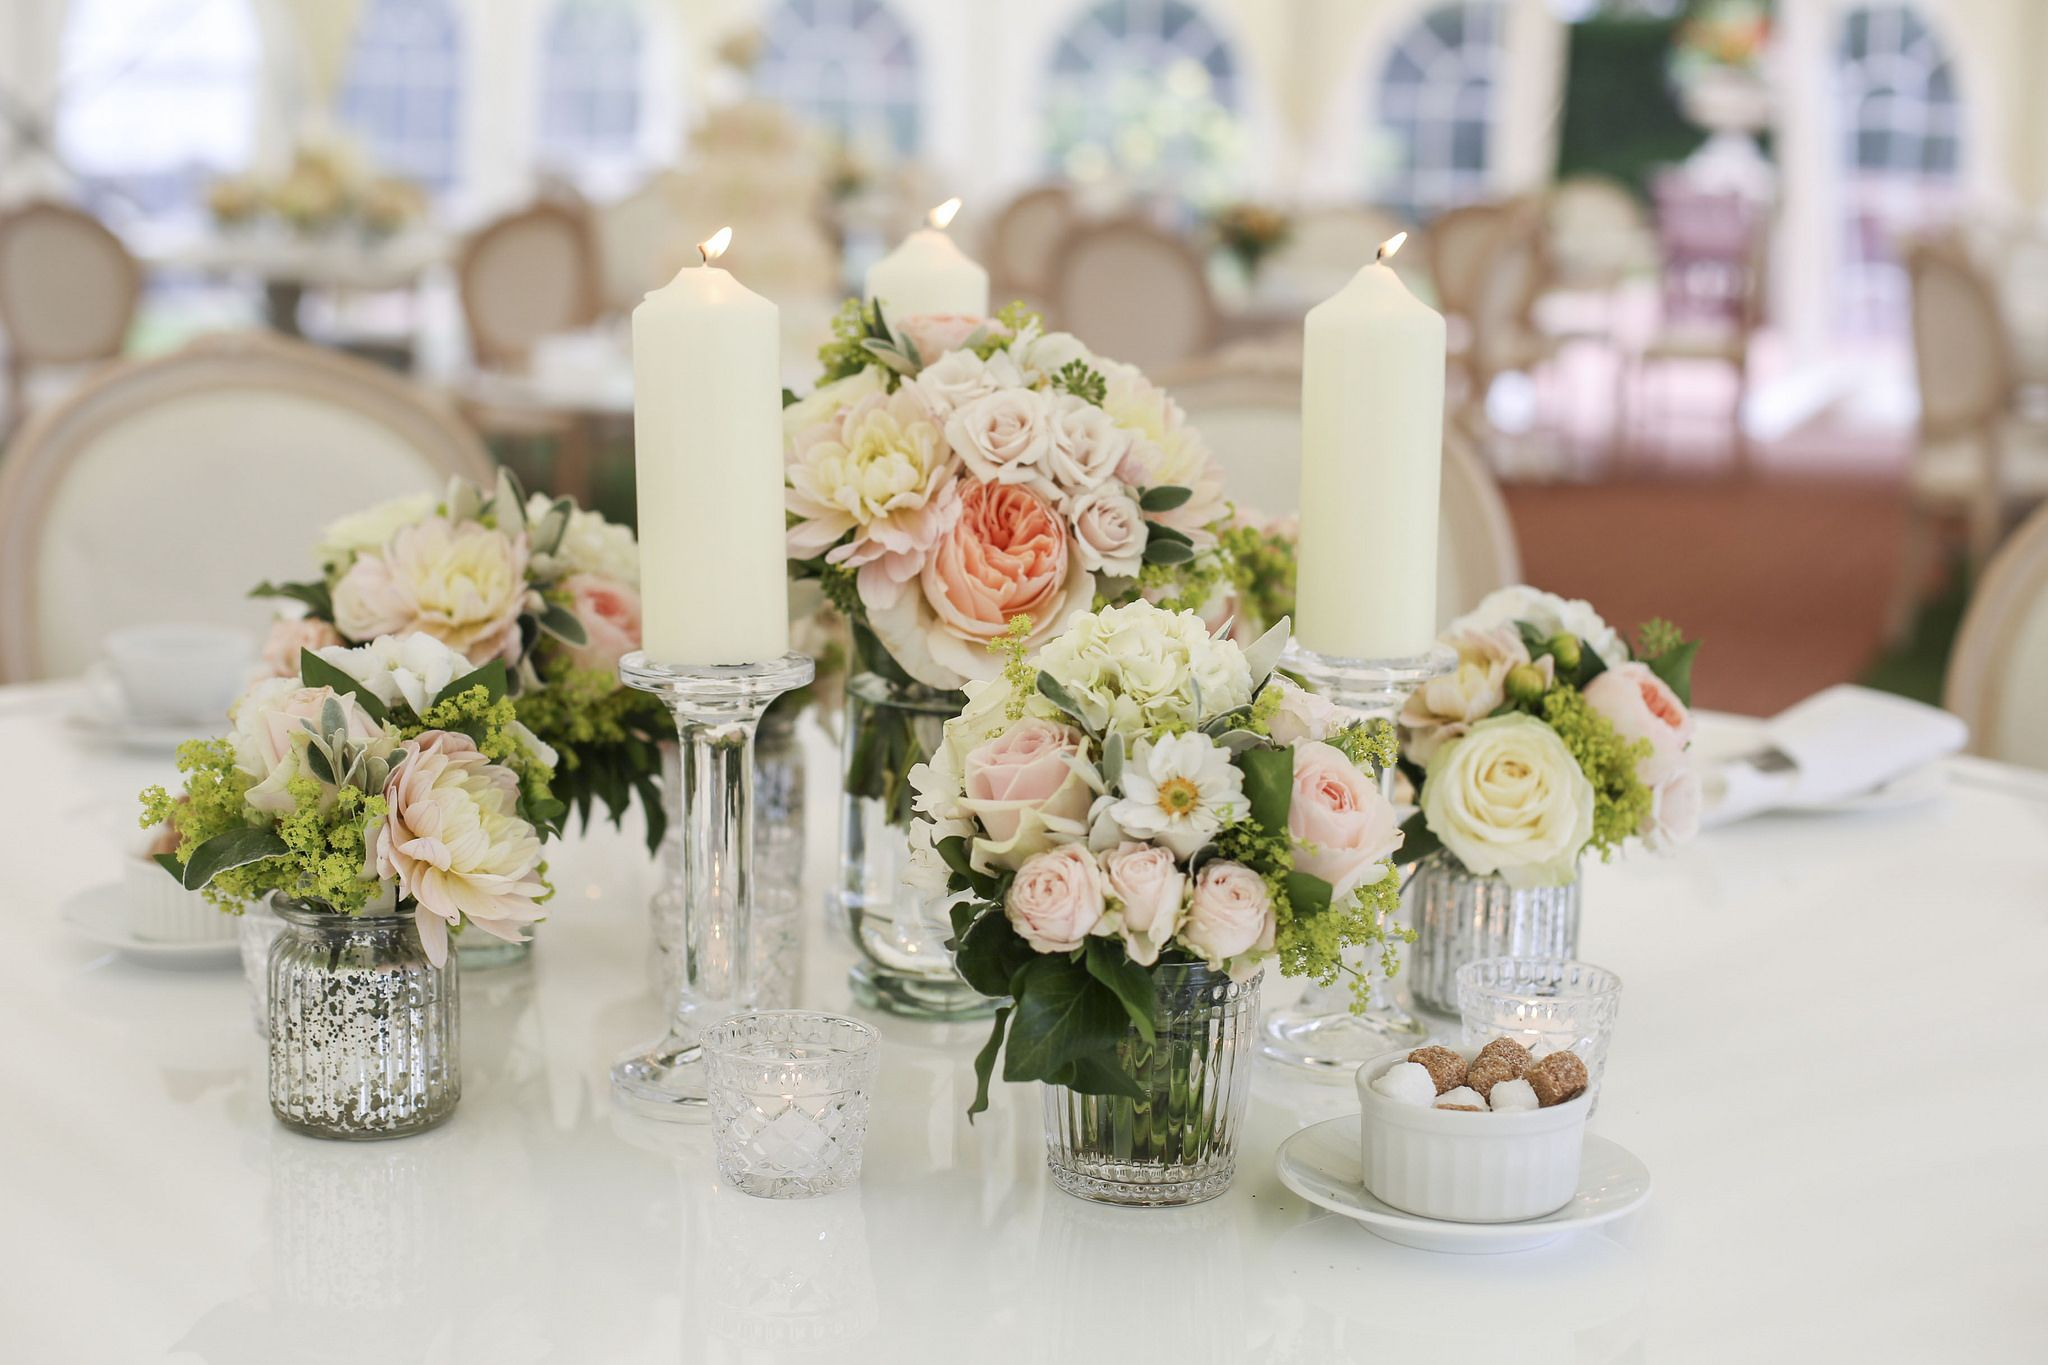 Low, Grouped, Peach And Cream Wedding Flowers With Roses, Spray